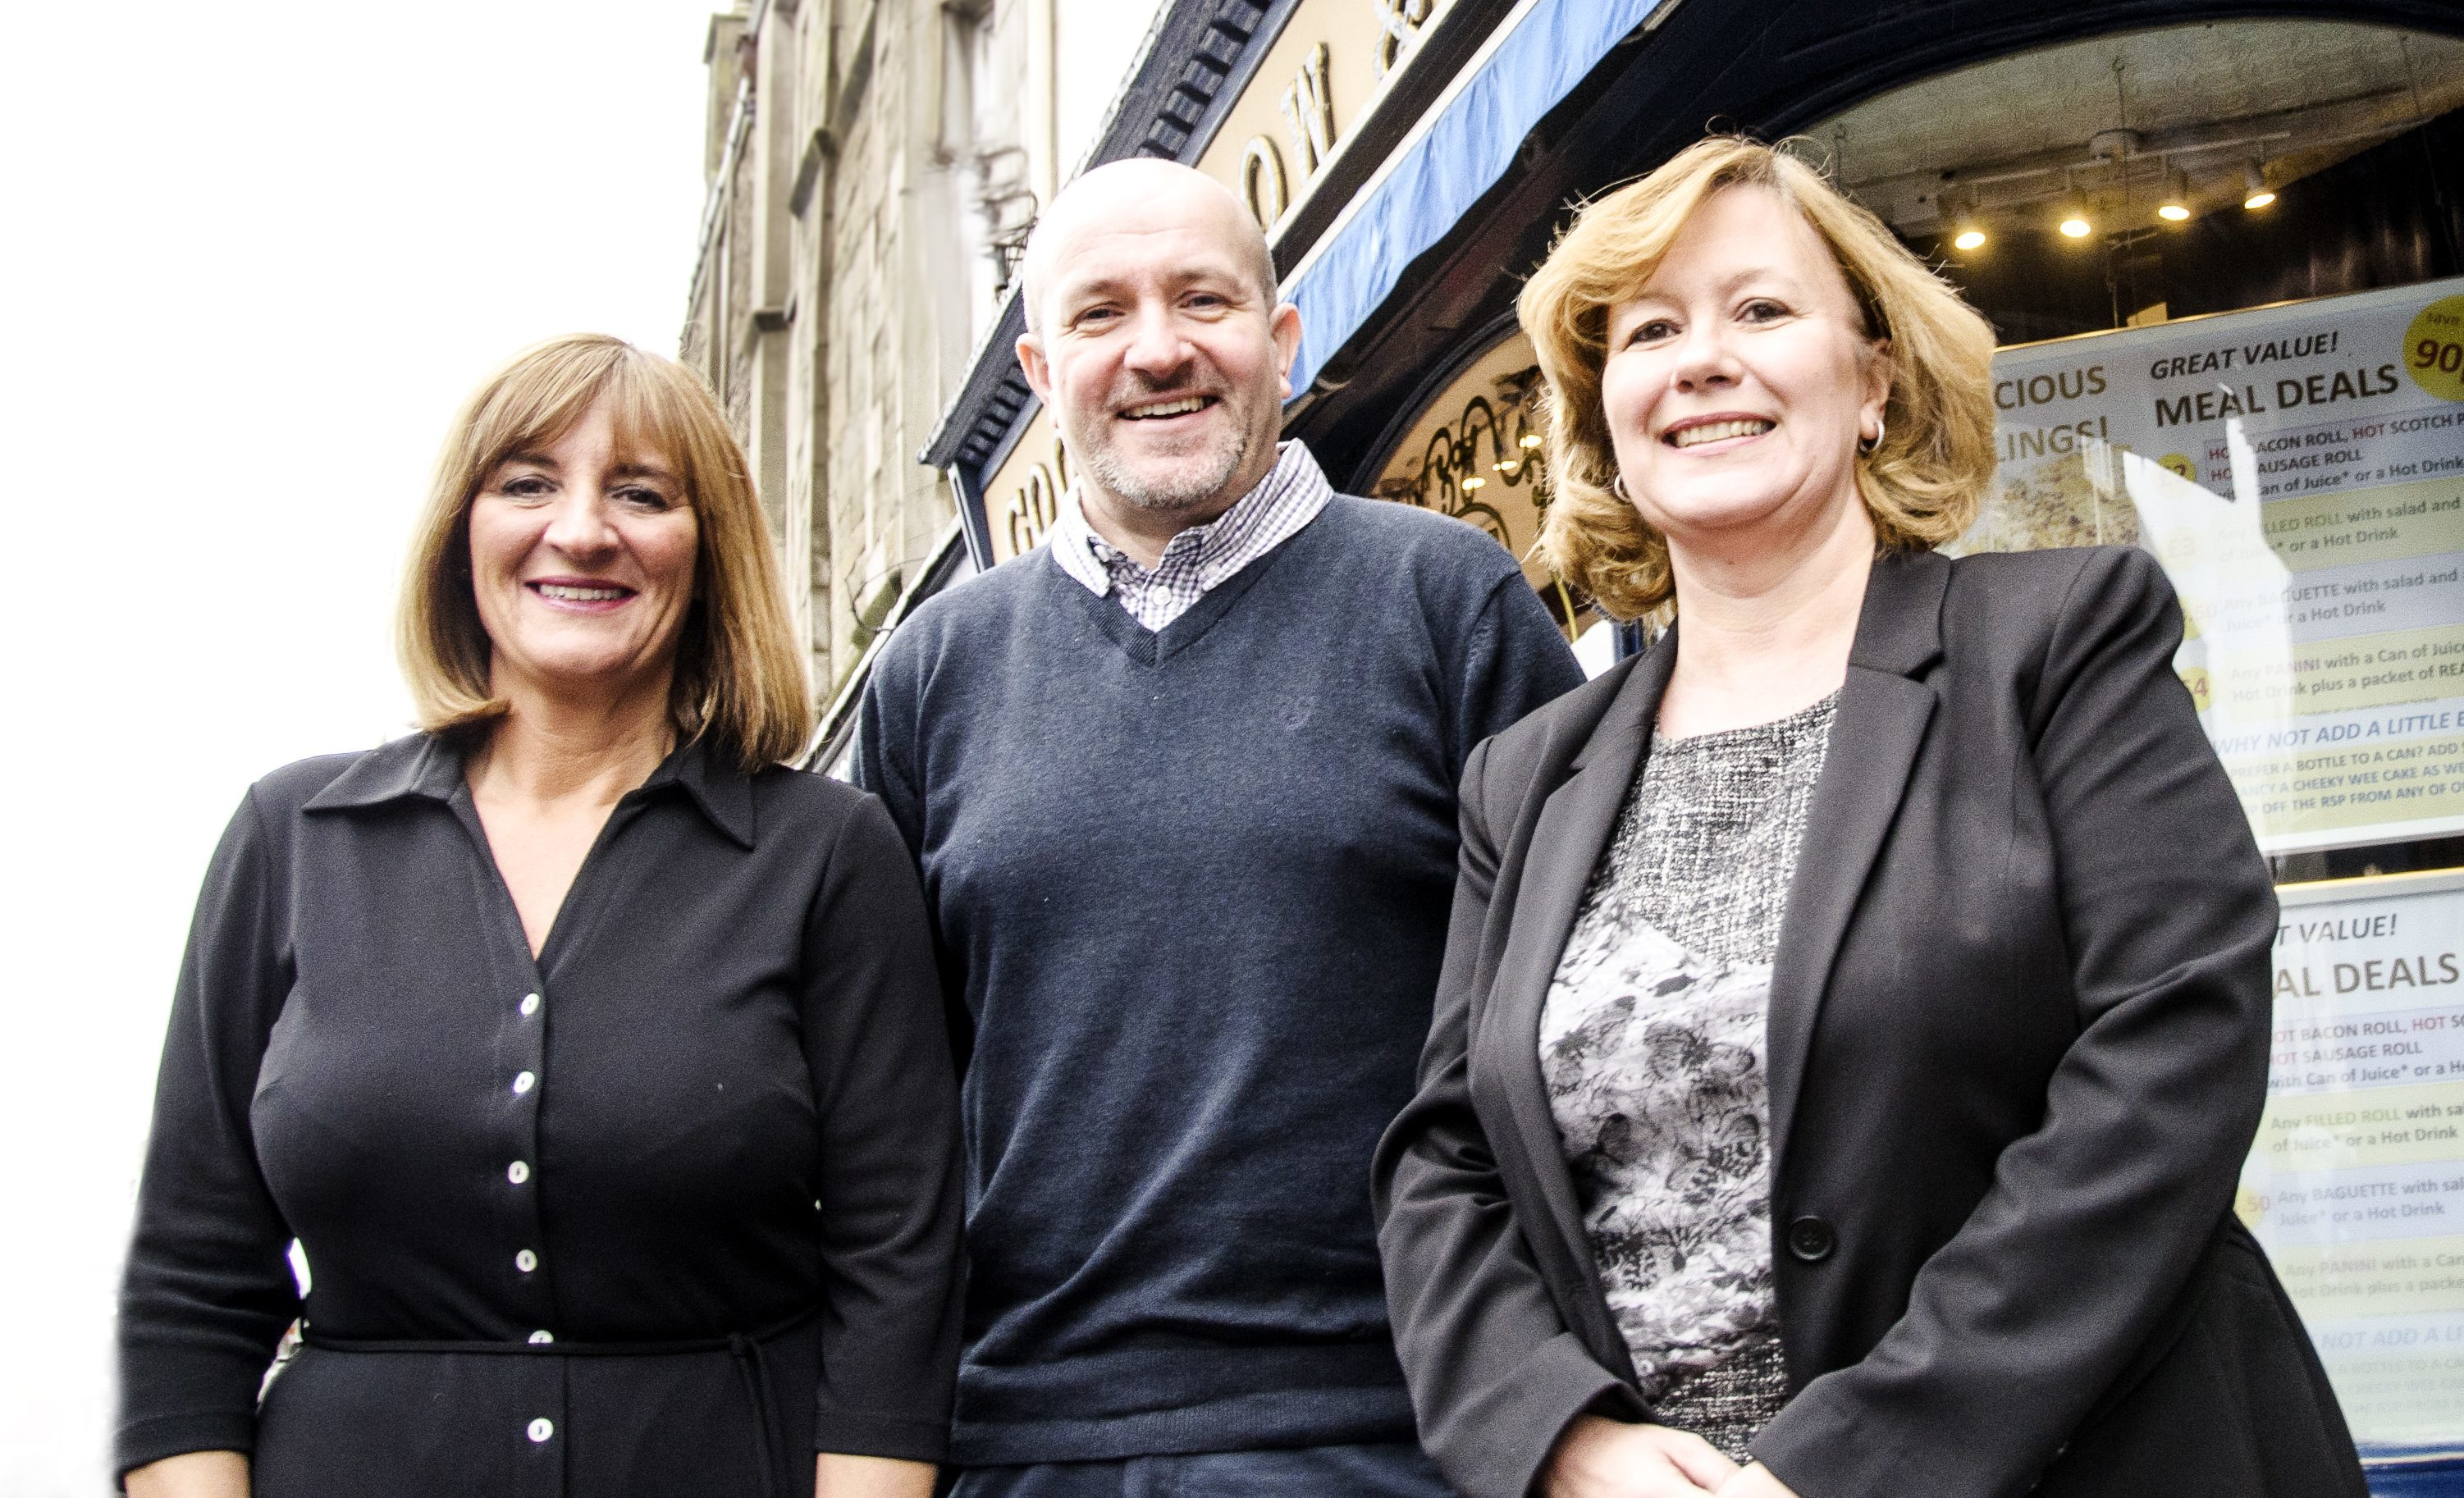 The new board members from left - Jacqui Souter, Rob Sinclair and Laura Ross.